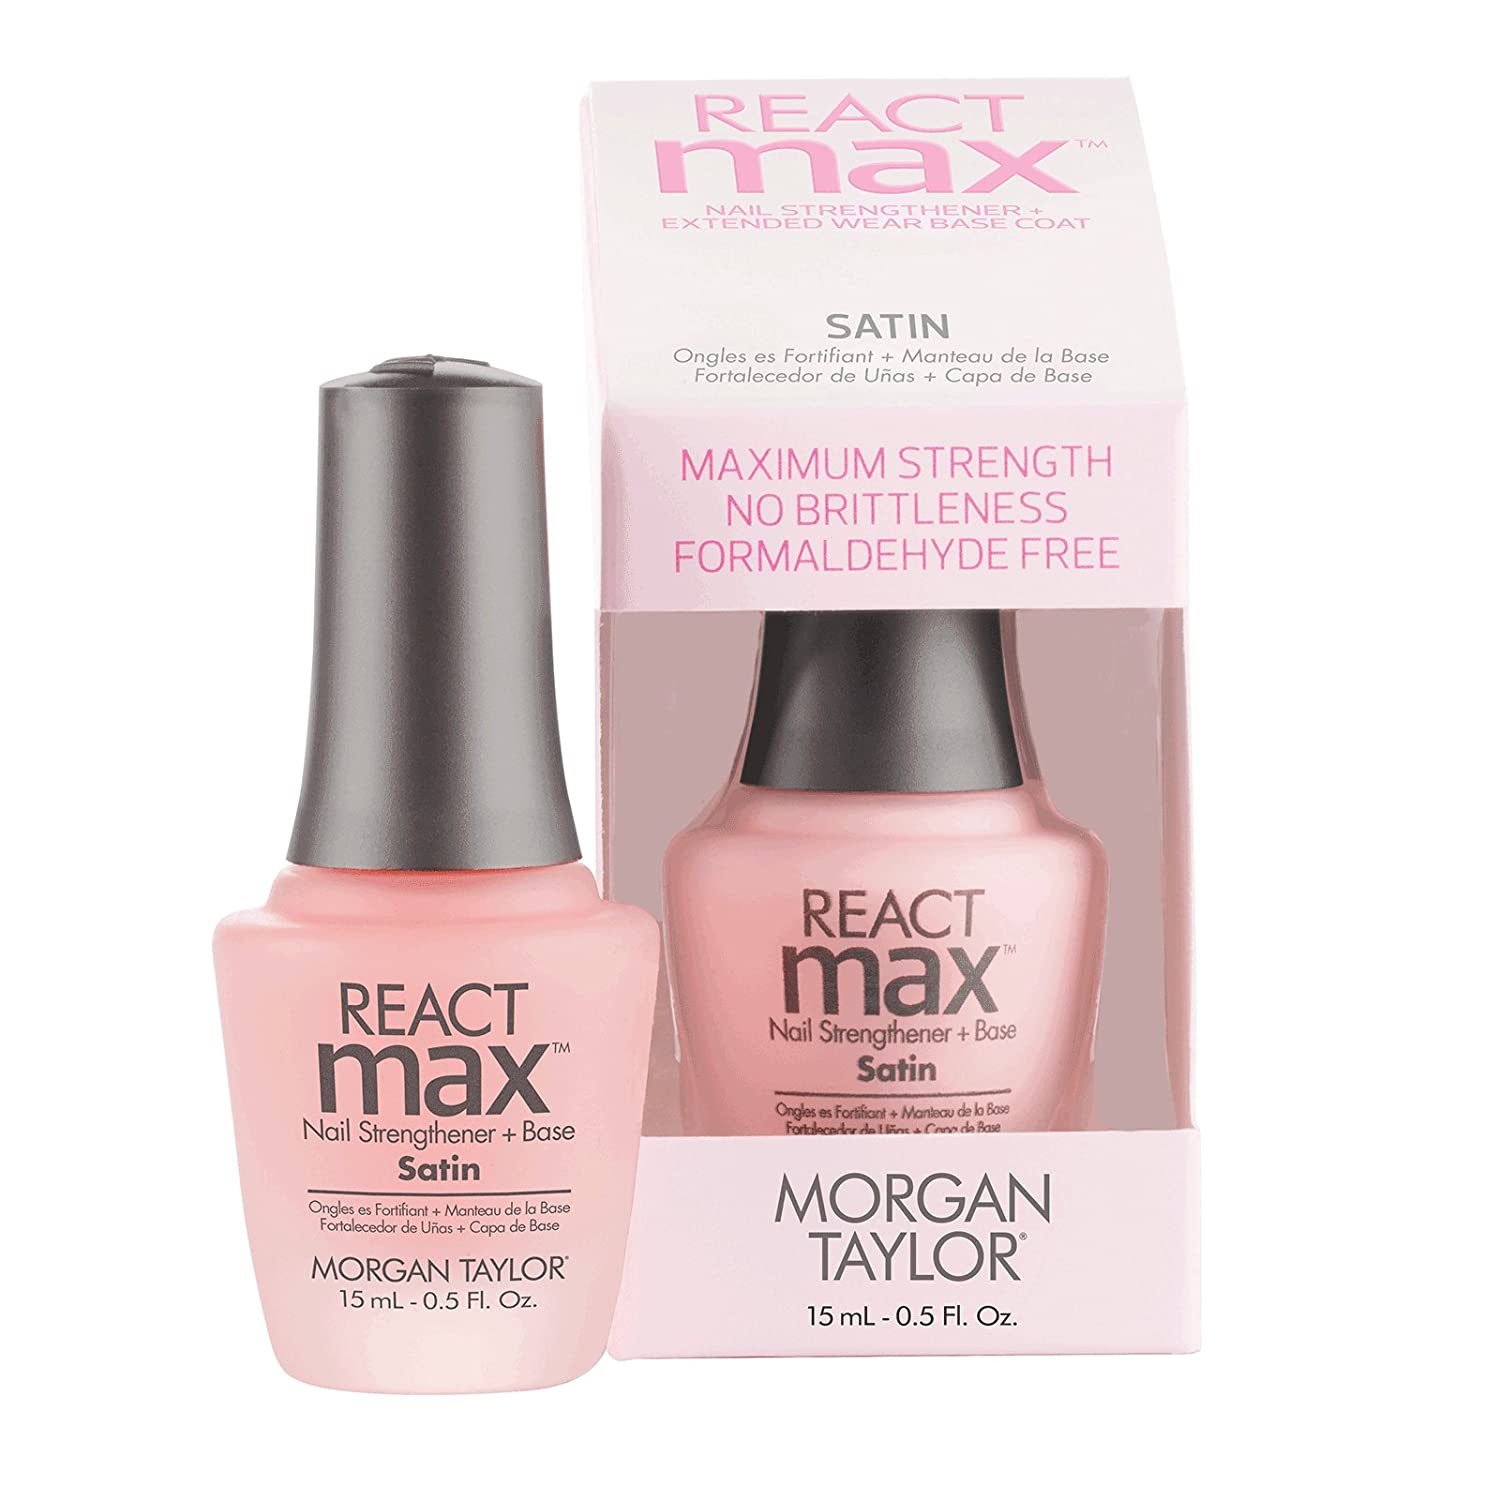 Morgan Taylor reactmax satin nail strengthener + extended wear base coat, 15ml